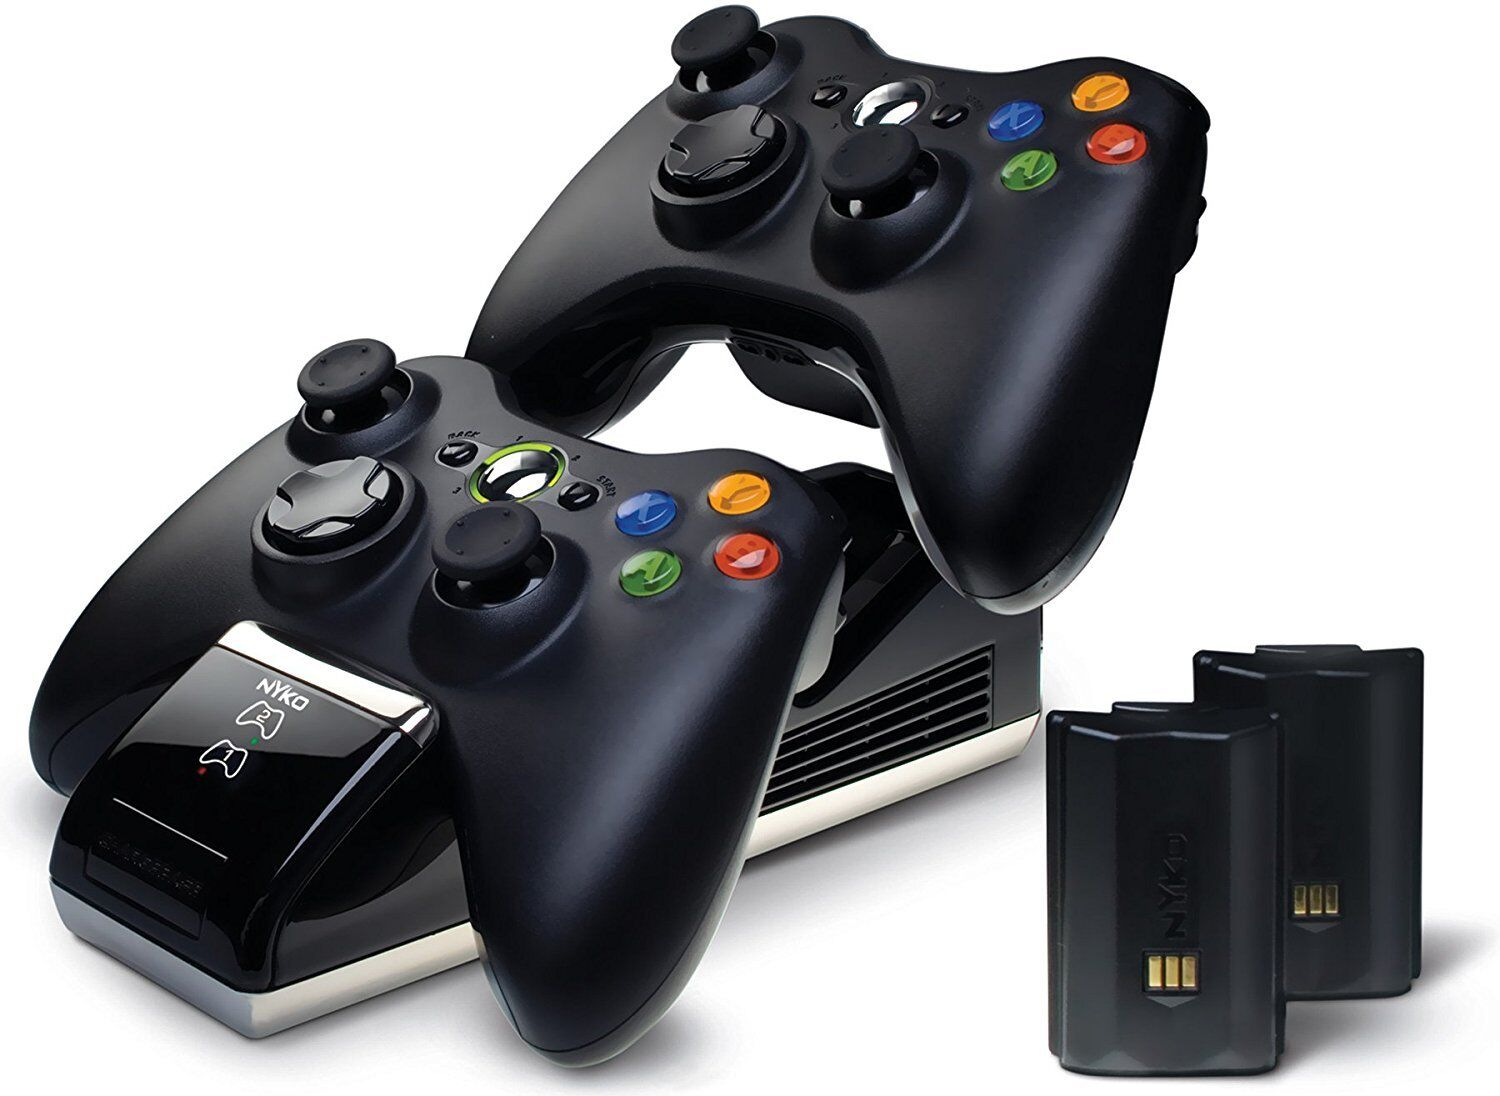 Xbox 360 Controller Charge Base Dock Station Charger ...Xbox 360 Controller Charger